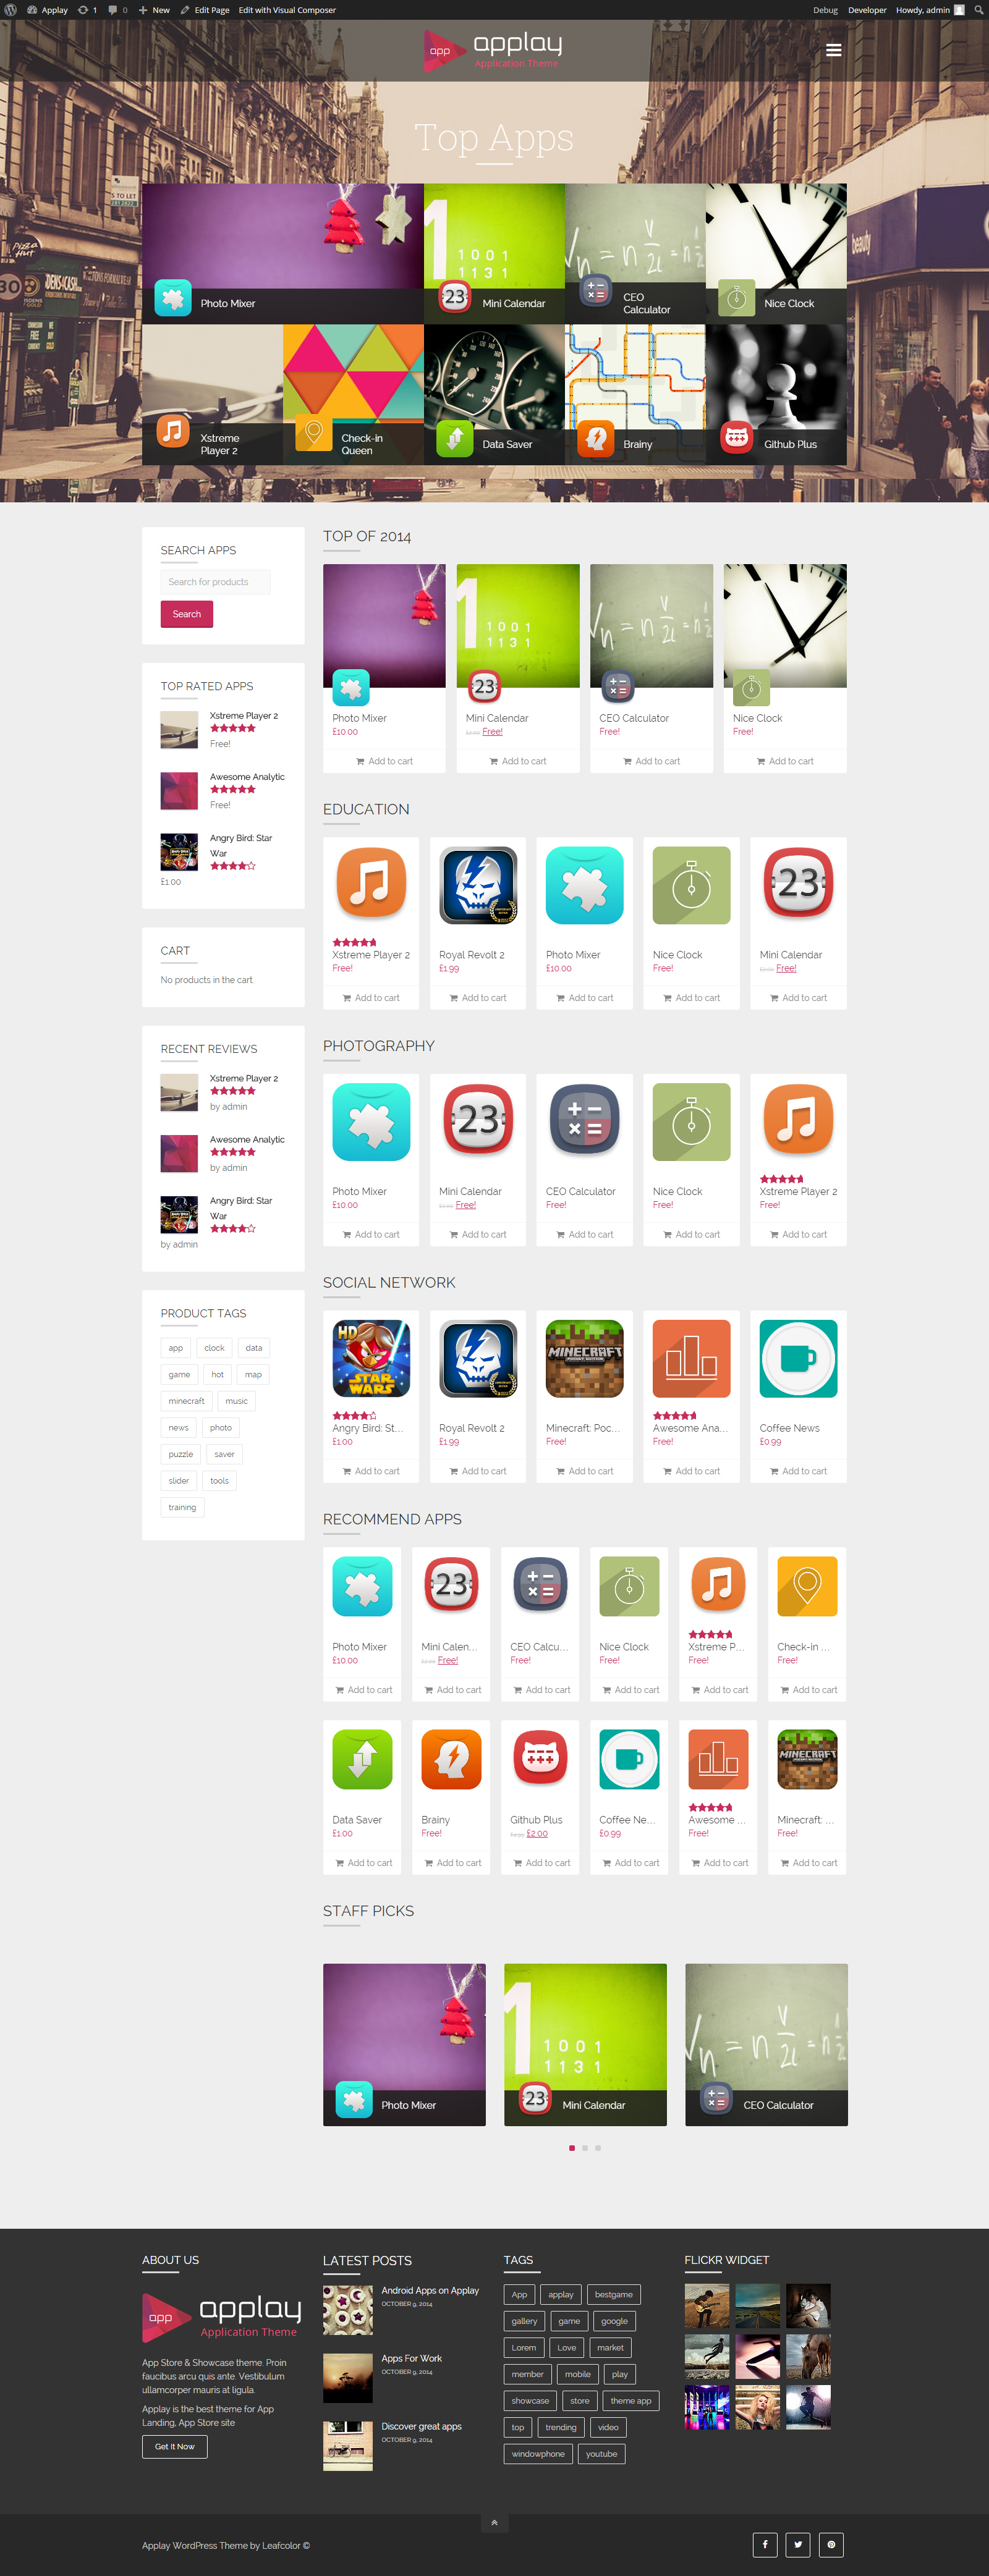 Applay WordPress App Showcase & App Store Theme by leafcolor